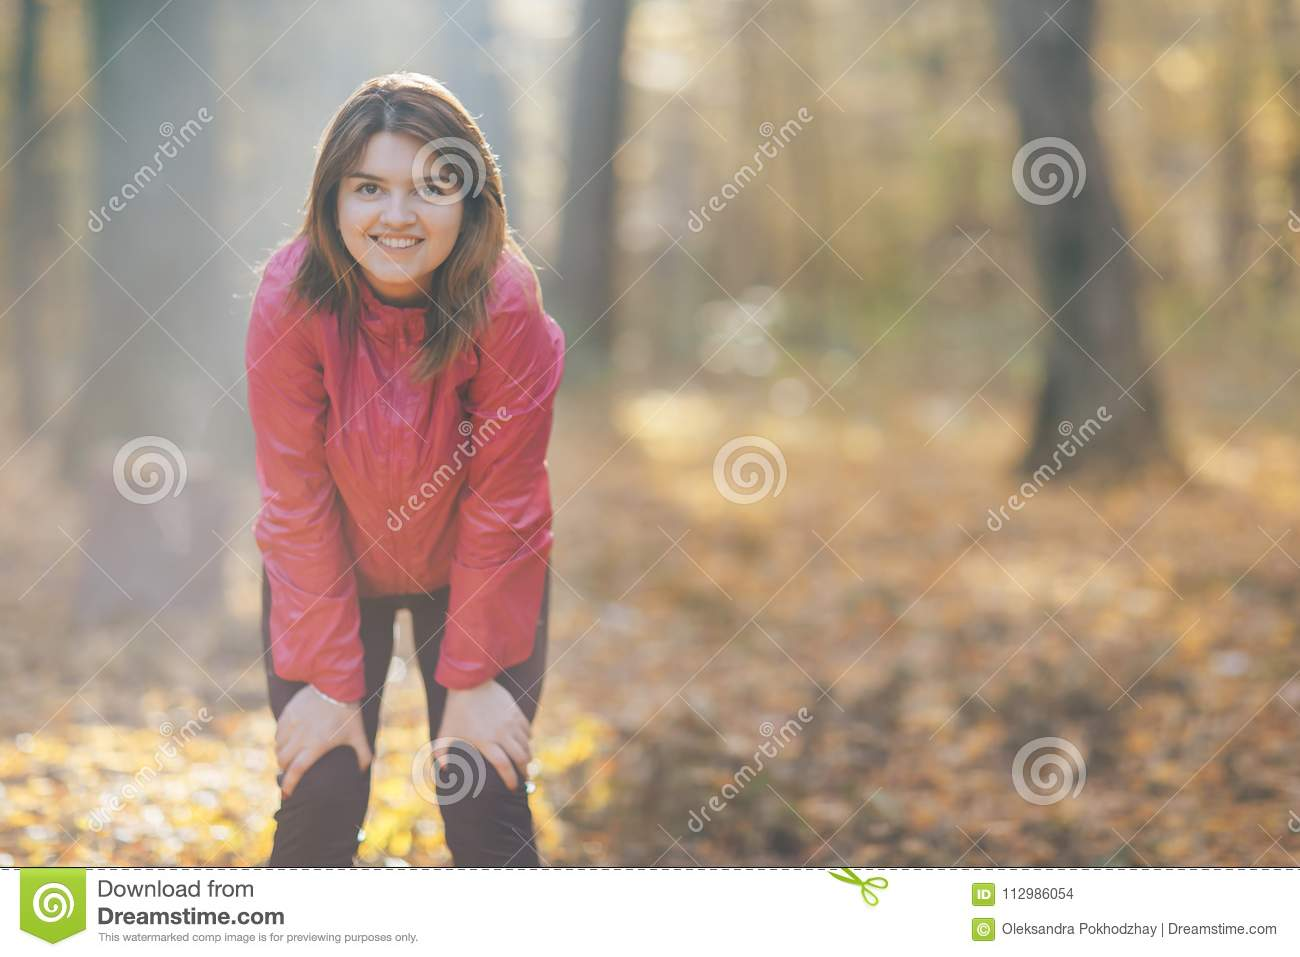 Close-up portrait of a girl who trains in the morning autumn park